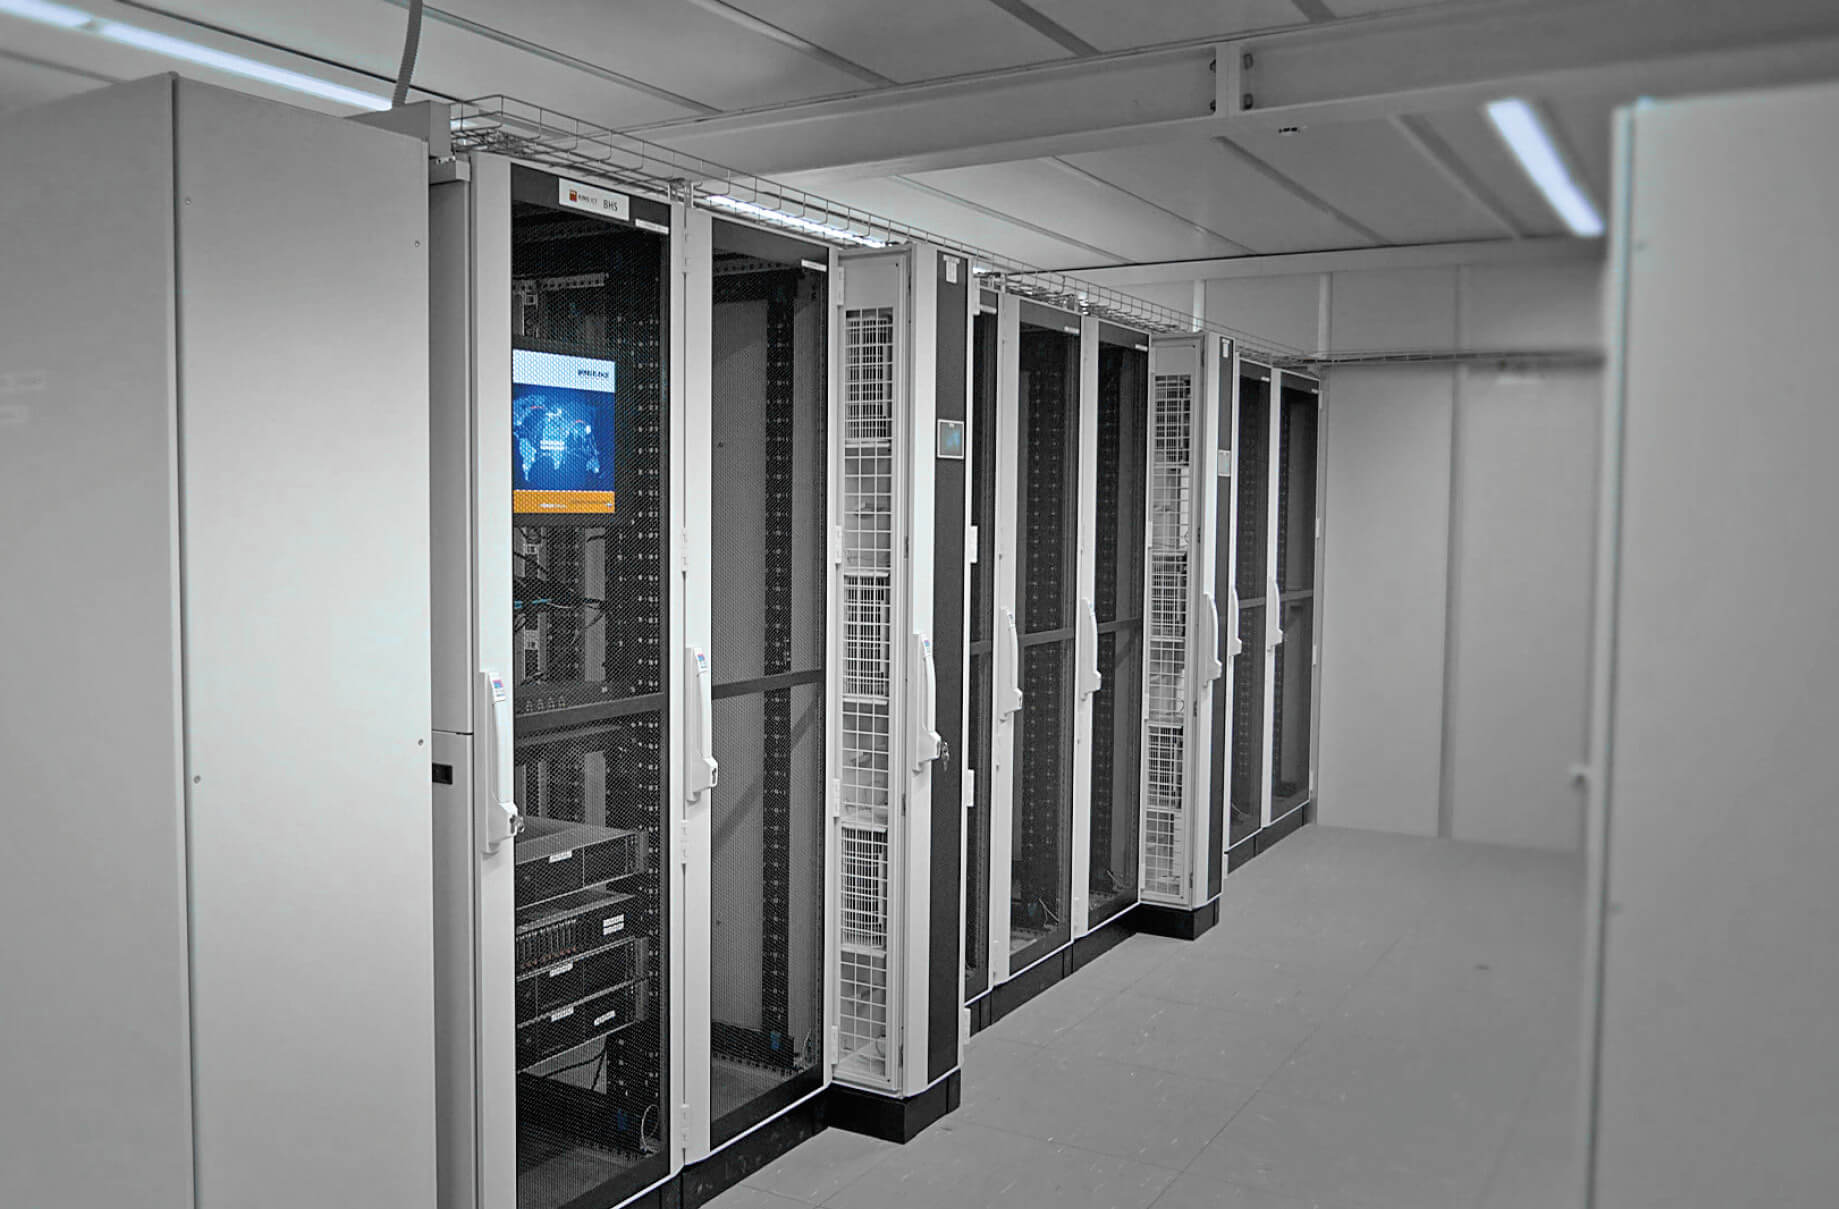 Efficient cooling – Hot aisle containment combined with water-based Liquid ­Cooling Package (LCP CW) from Rittal ensure an energy- saving cooling of the IT system. The cooling systems are installed in a redundant was to improve the fail-safeness of the entire system.